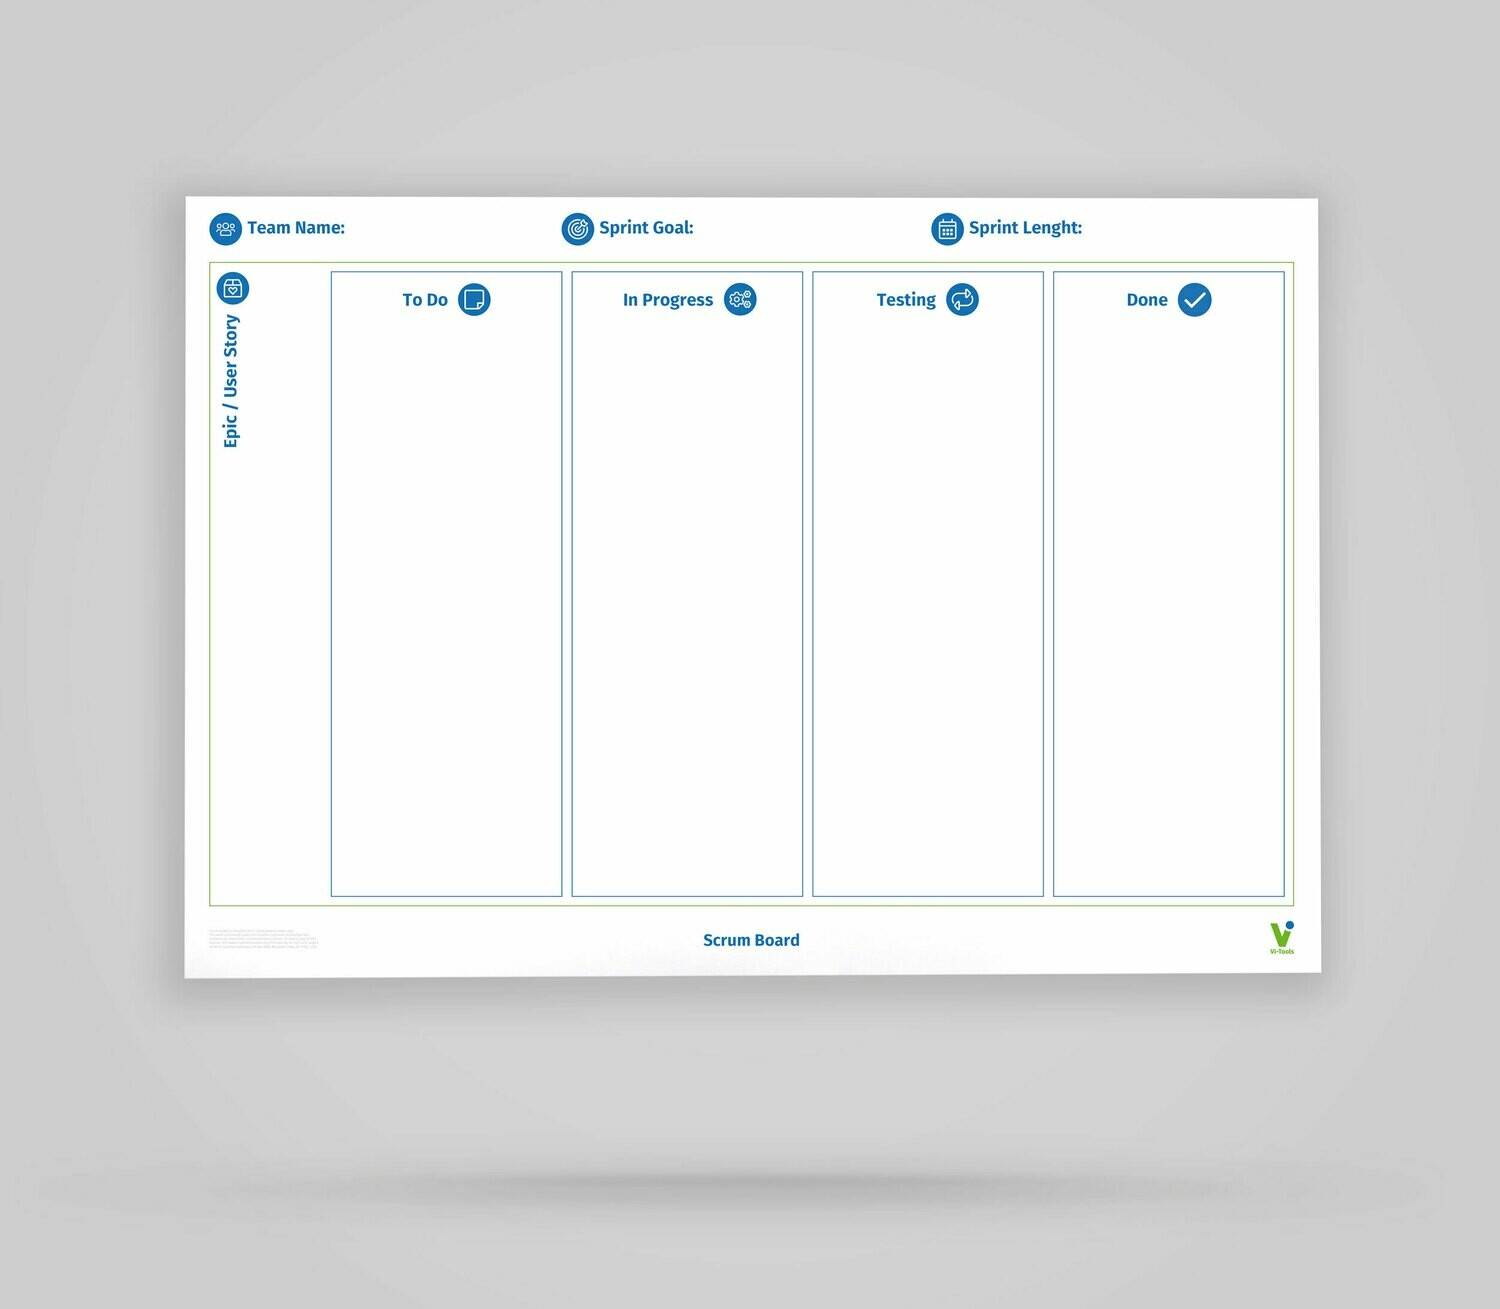 one side blank; 85x118 cm double-sided Vi-Board Lean Canvas//Whiteboard: rollable reusable mobile whiteboard poster; one side with Lean Canvas template approximately 34x47 inches